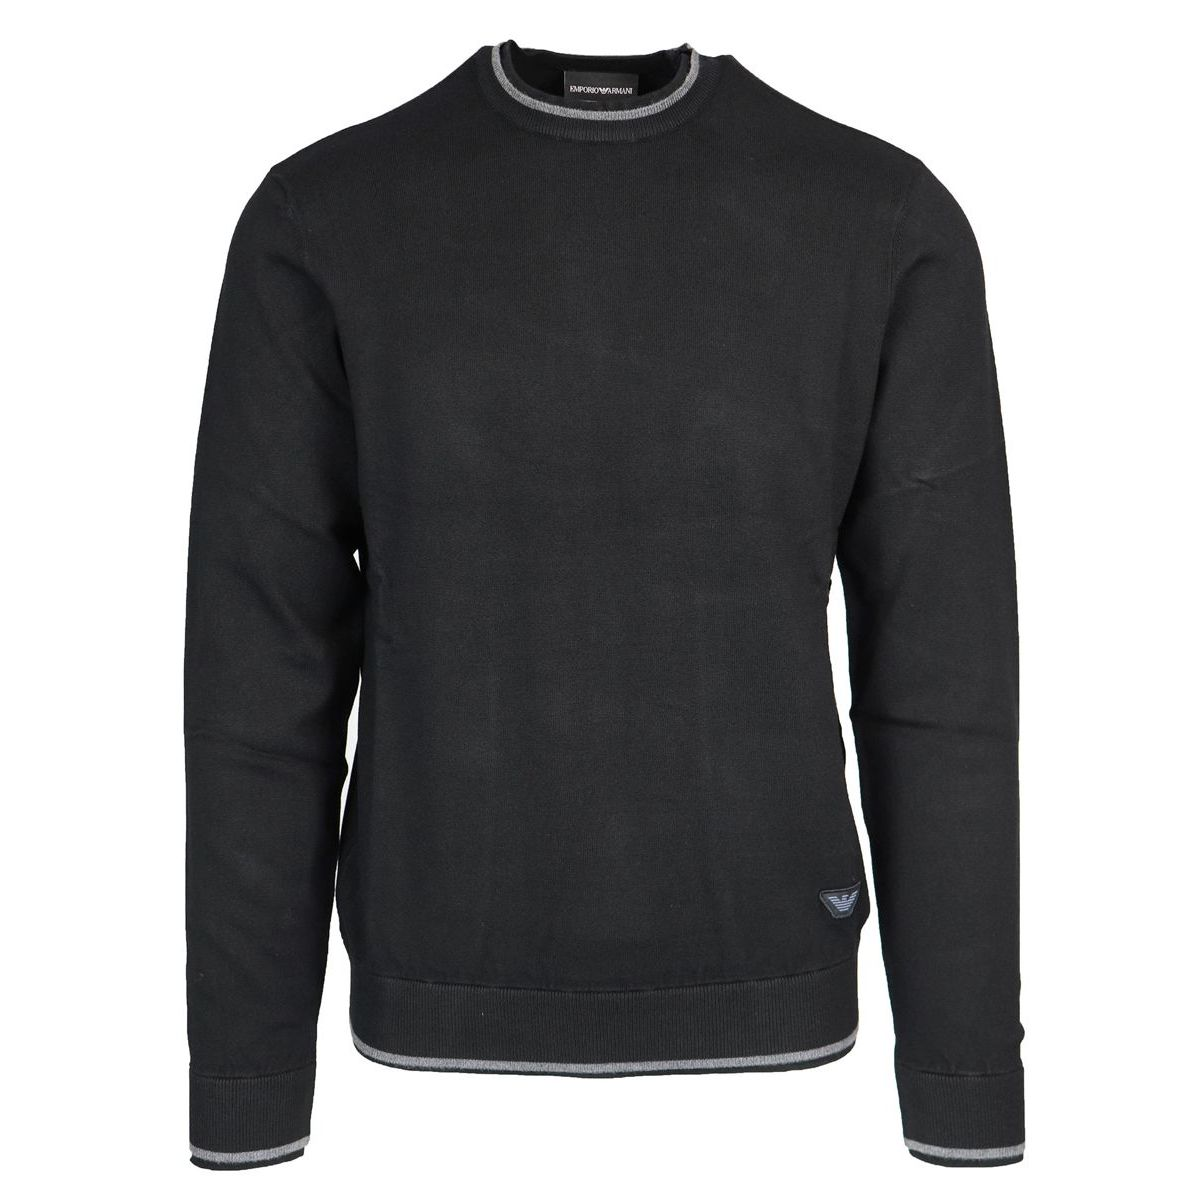 Crewneck sweater in viscose blend with contrasting edge logo Black Emporio Armani